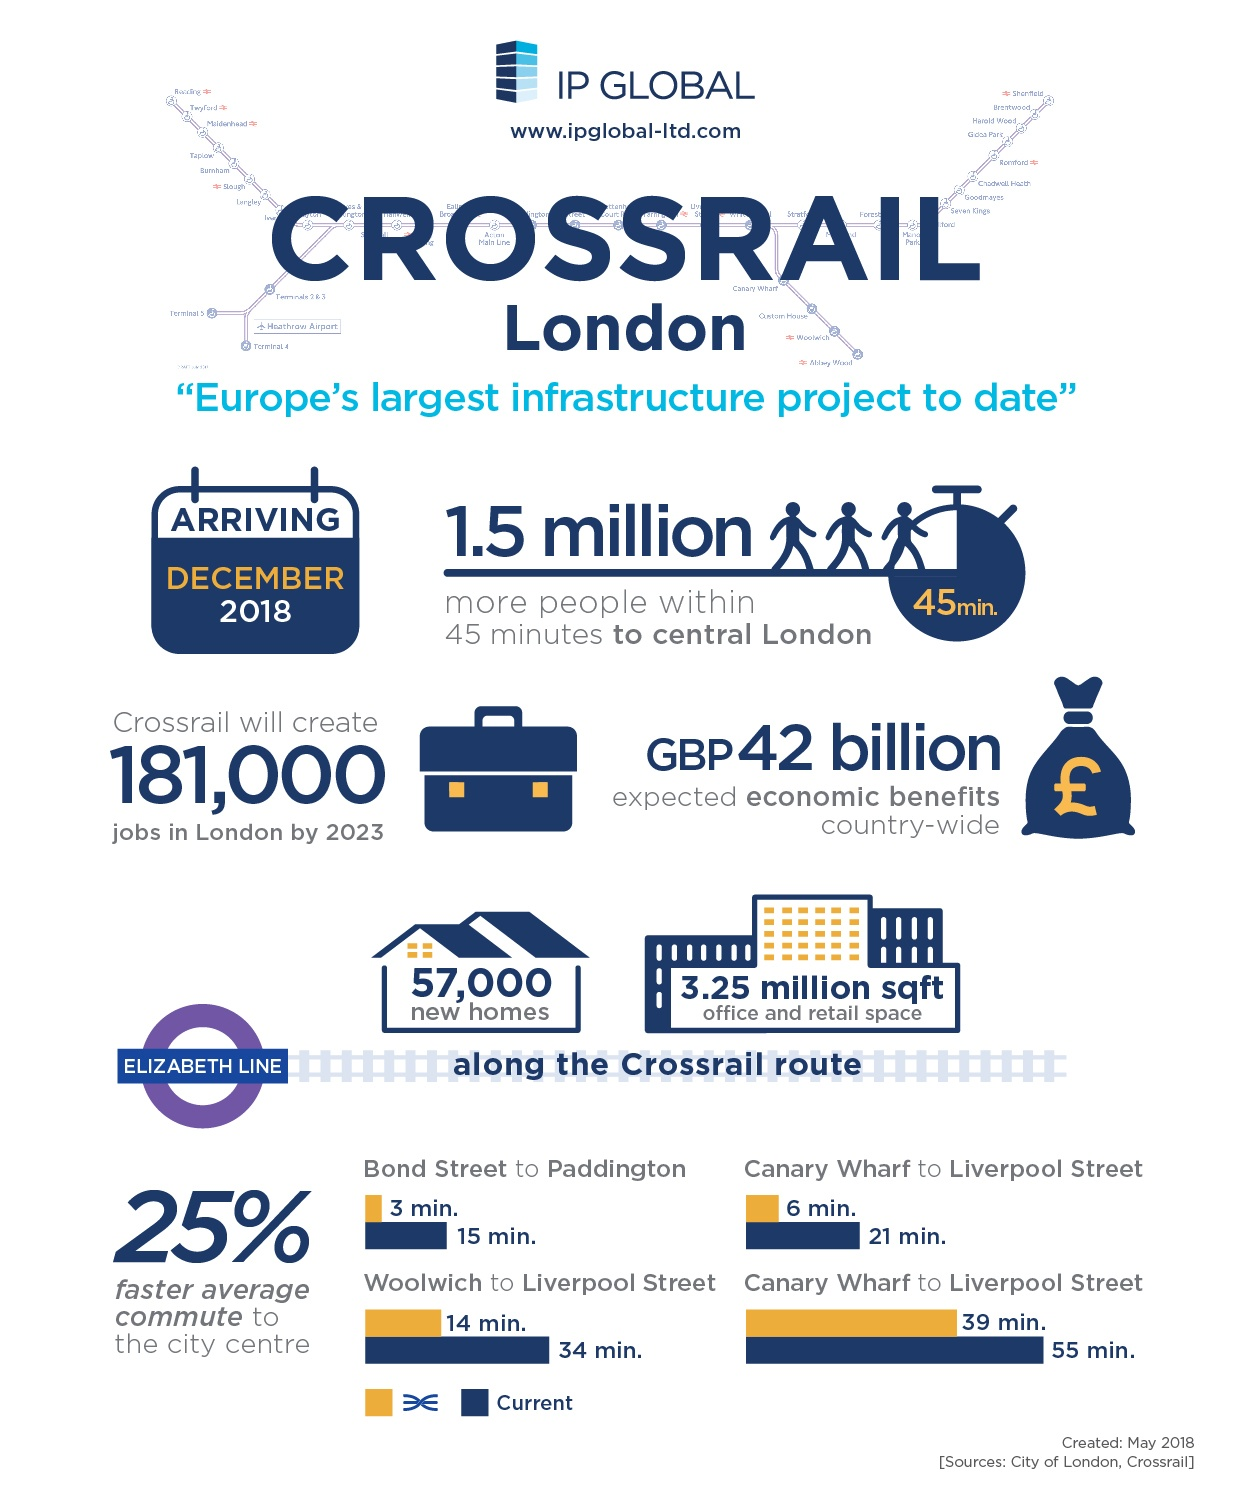 Crossrail_London_2018